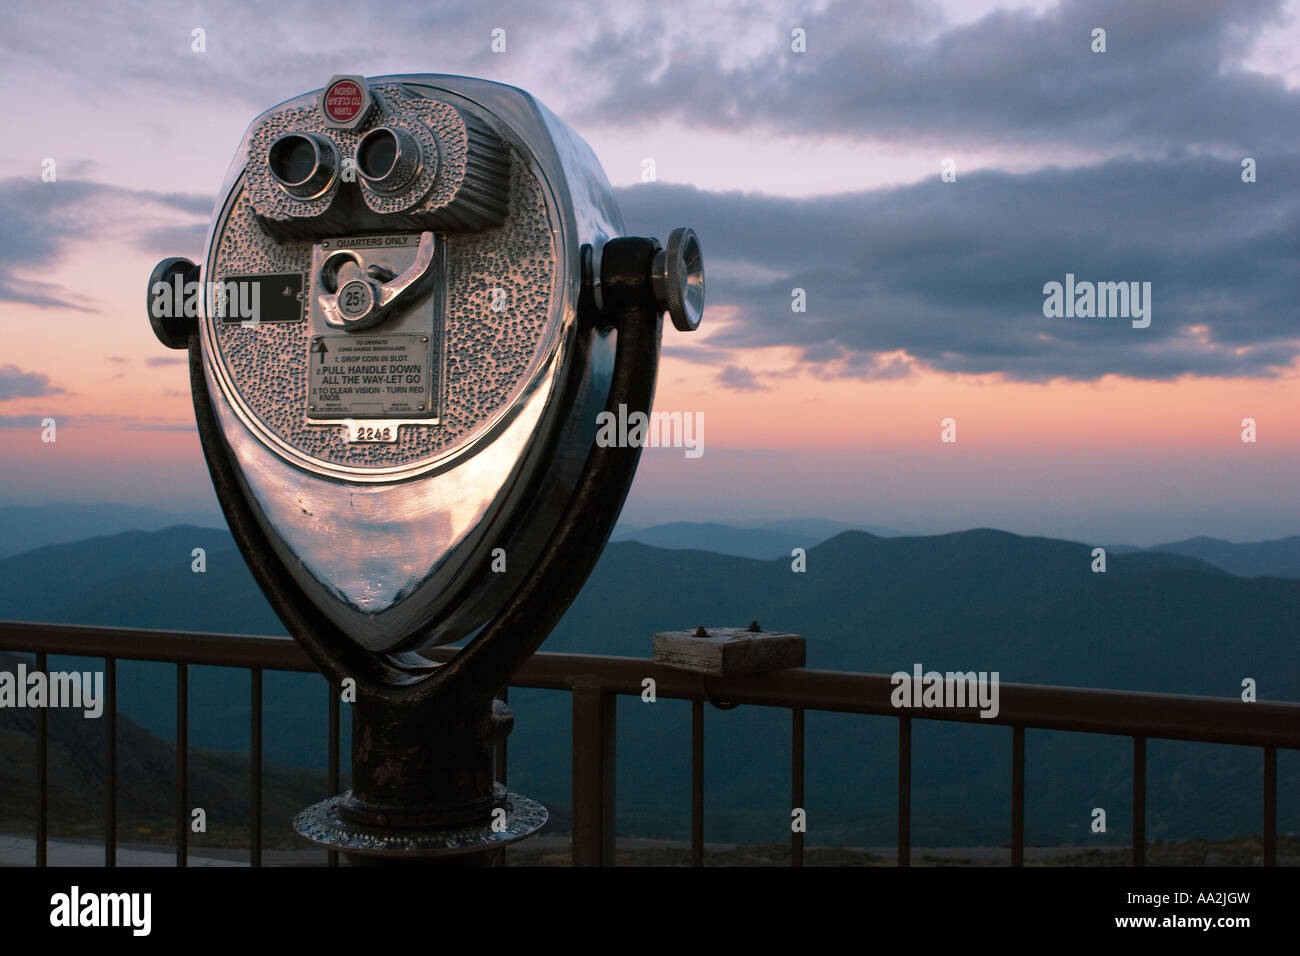 Viewing scope at the Summit of Mt Washington New Hampshire United States - Stock Image